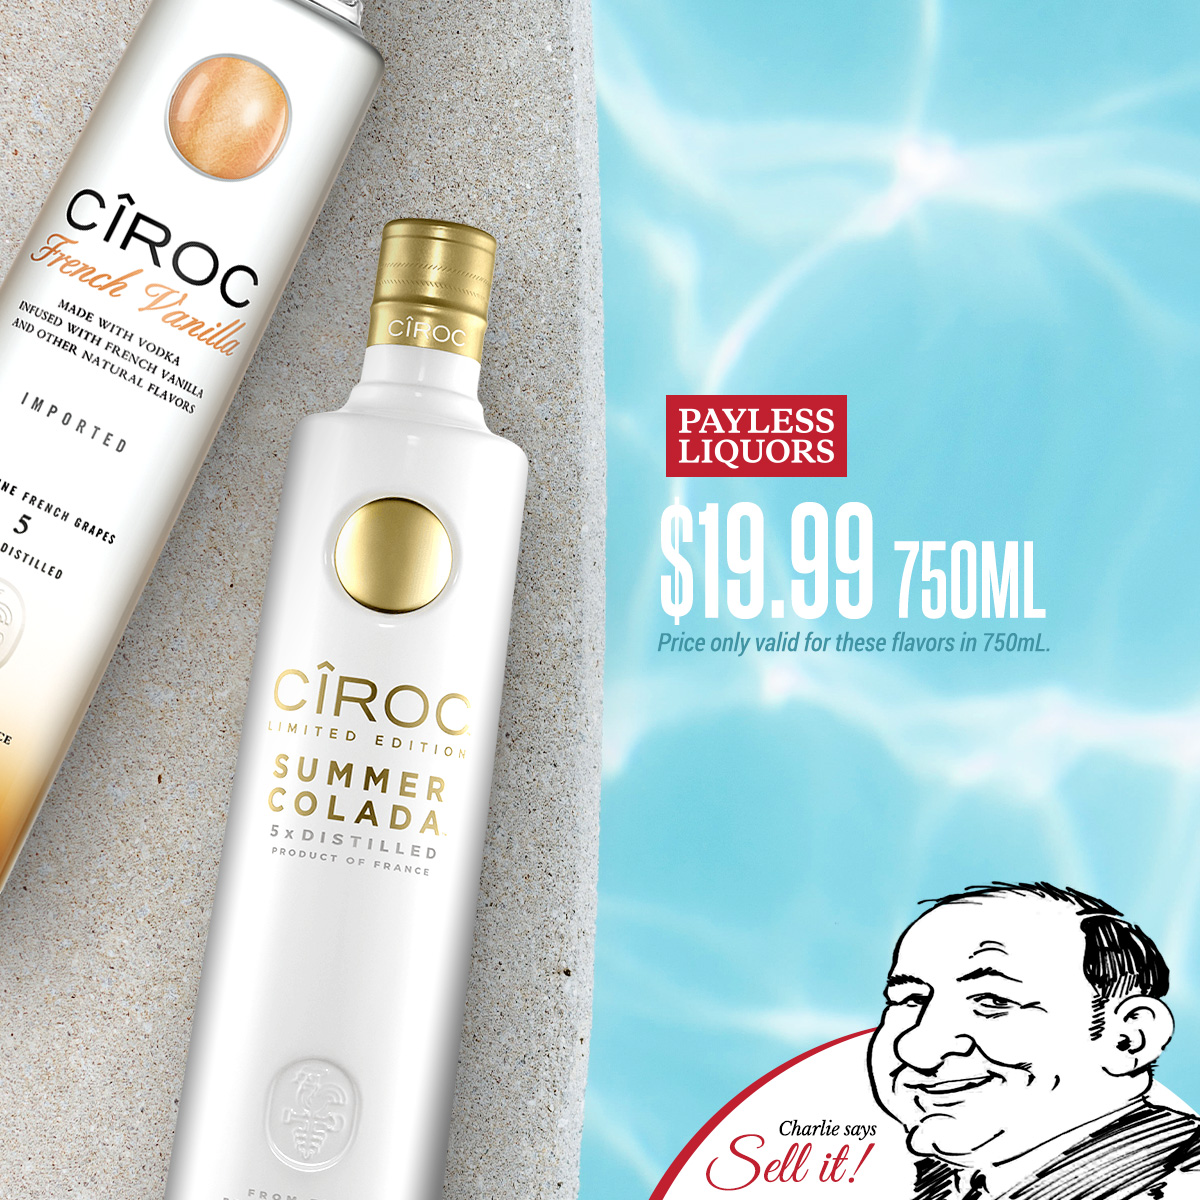 Ciroc Summer Colada & French Vanilla 750mL